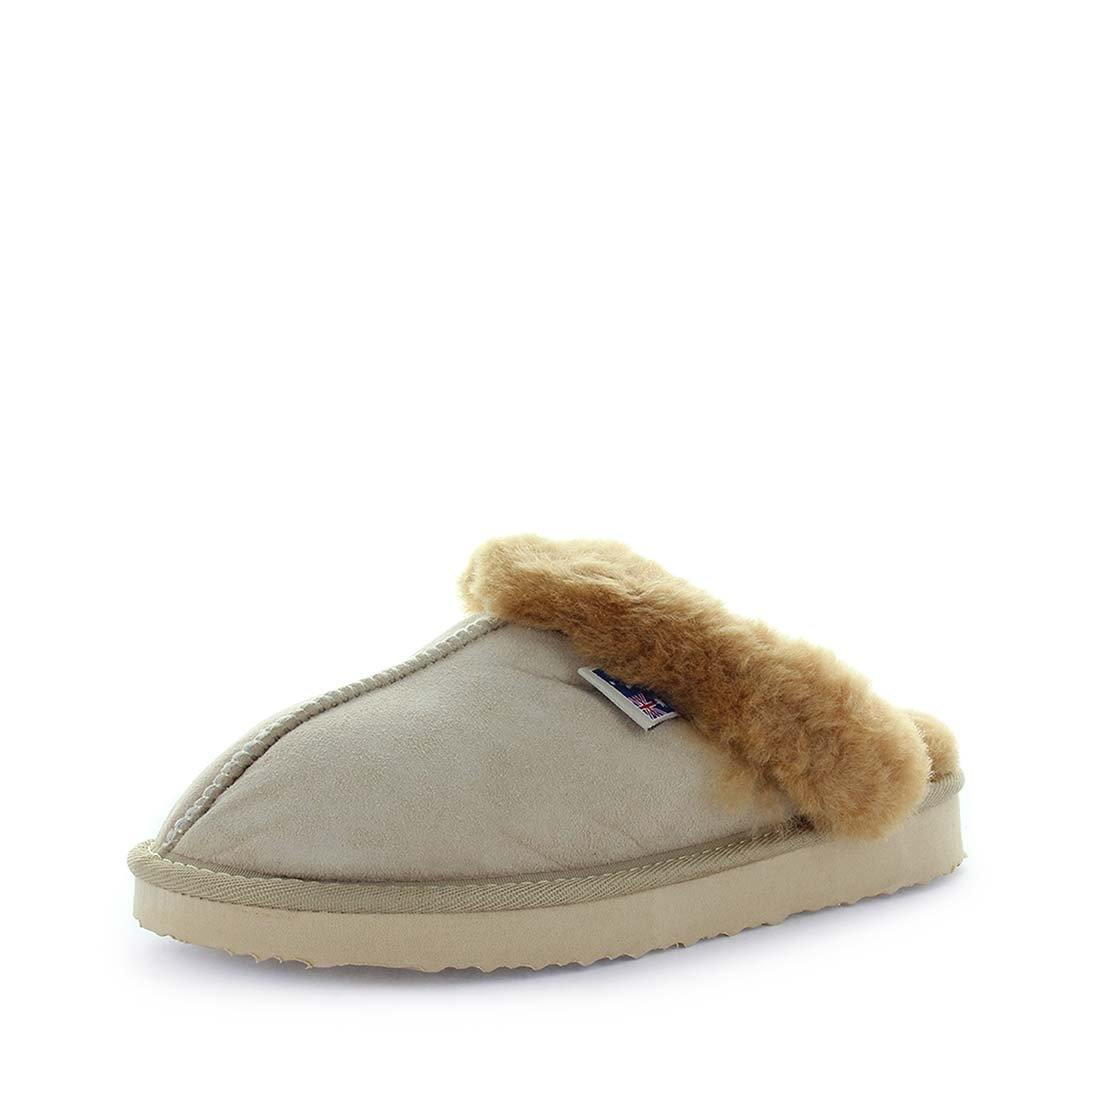 womens sheepskin uggs, womens ugg slippers, womens slippers, scuffs, Australian wool slippers